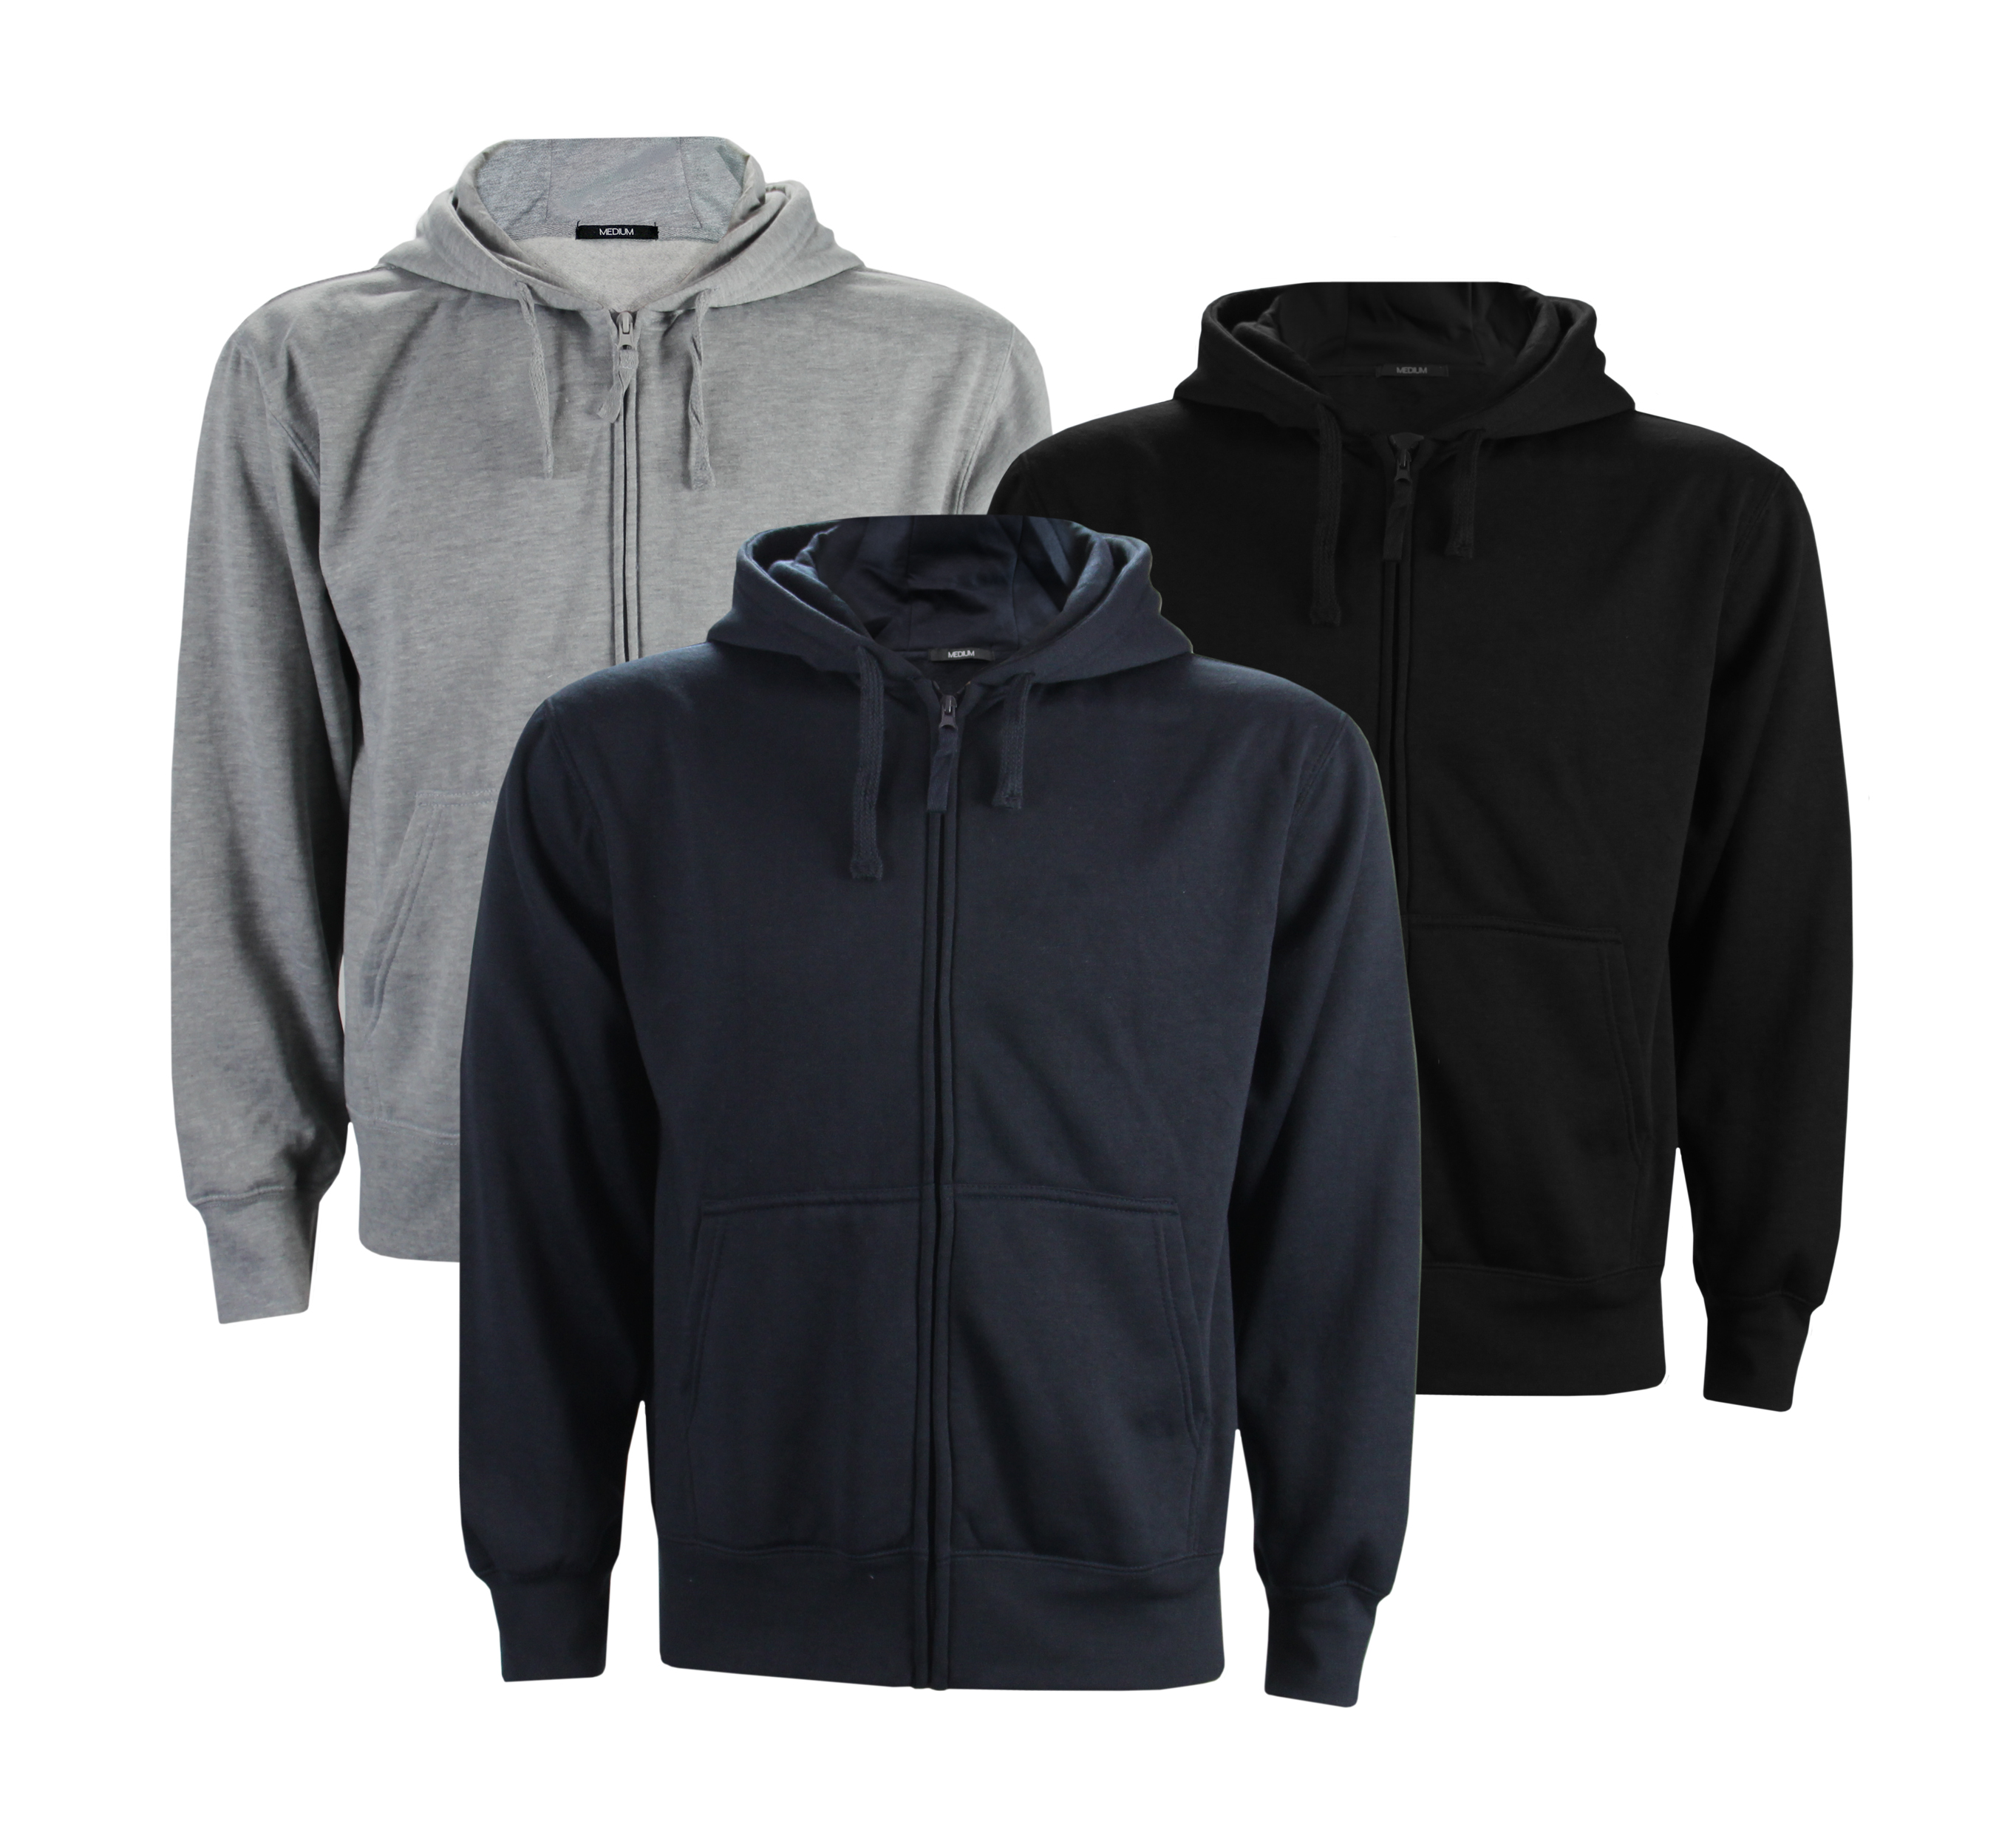 Shop mens sweatshirts and hoodies on 0549sahibi.tk Free shipping and free returns on eligible items.